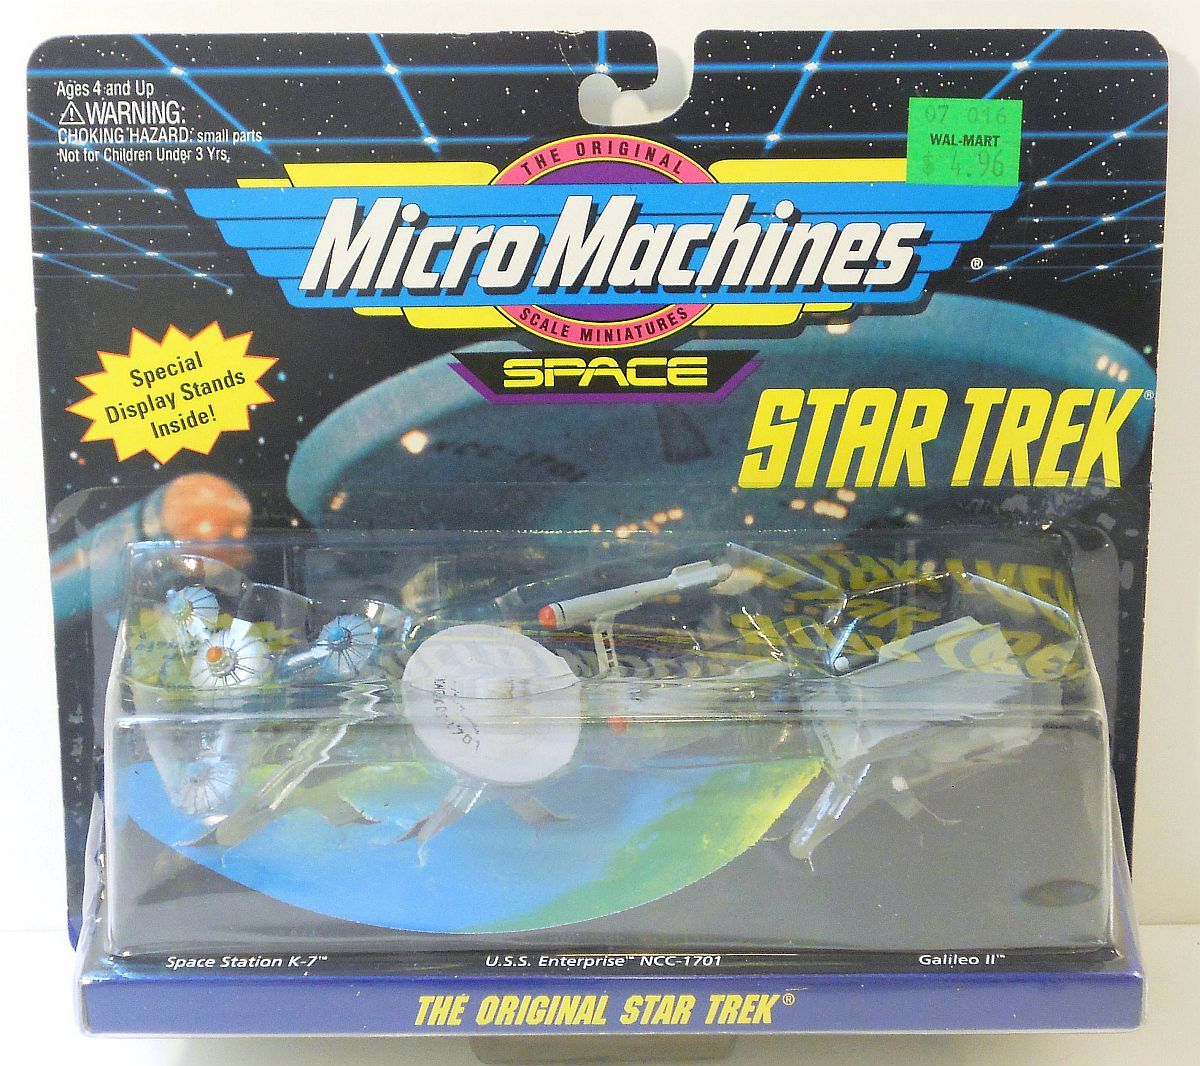 St_tos_micro_machines_1